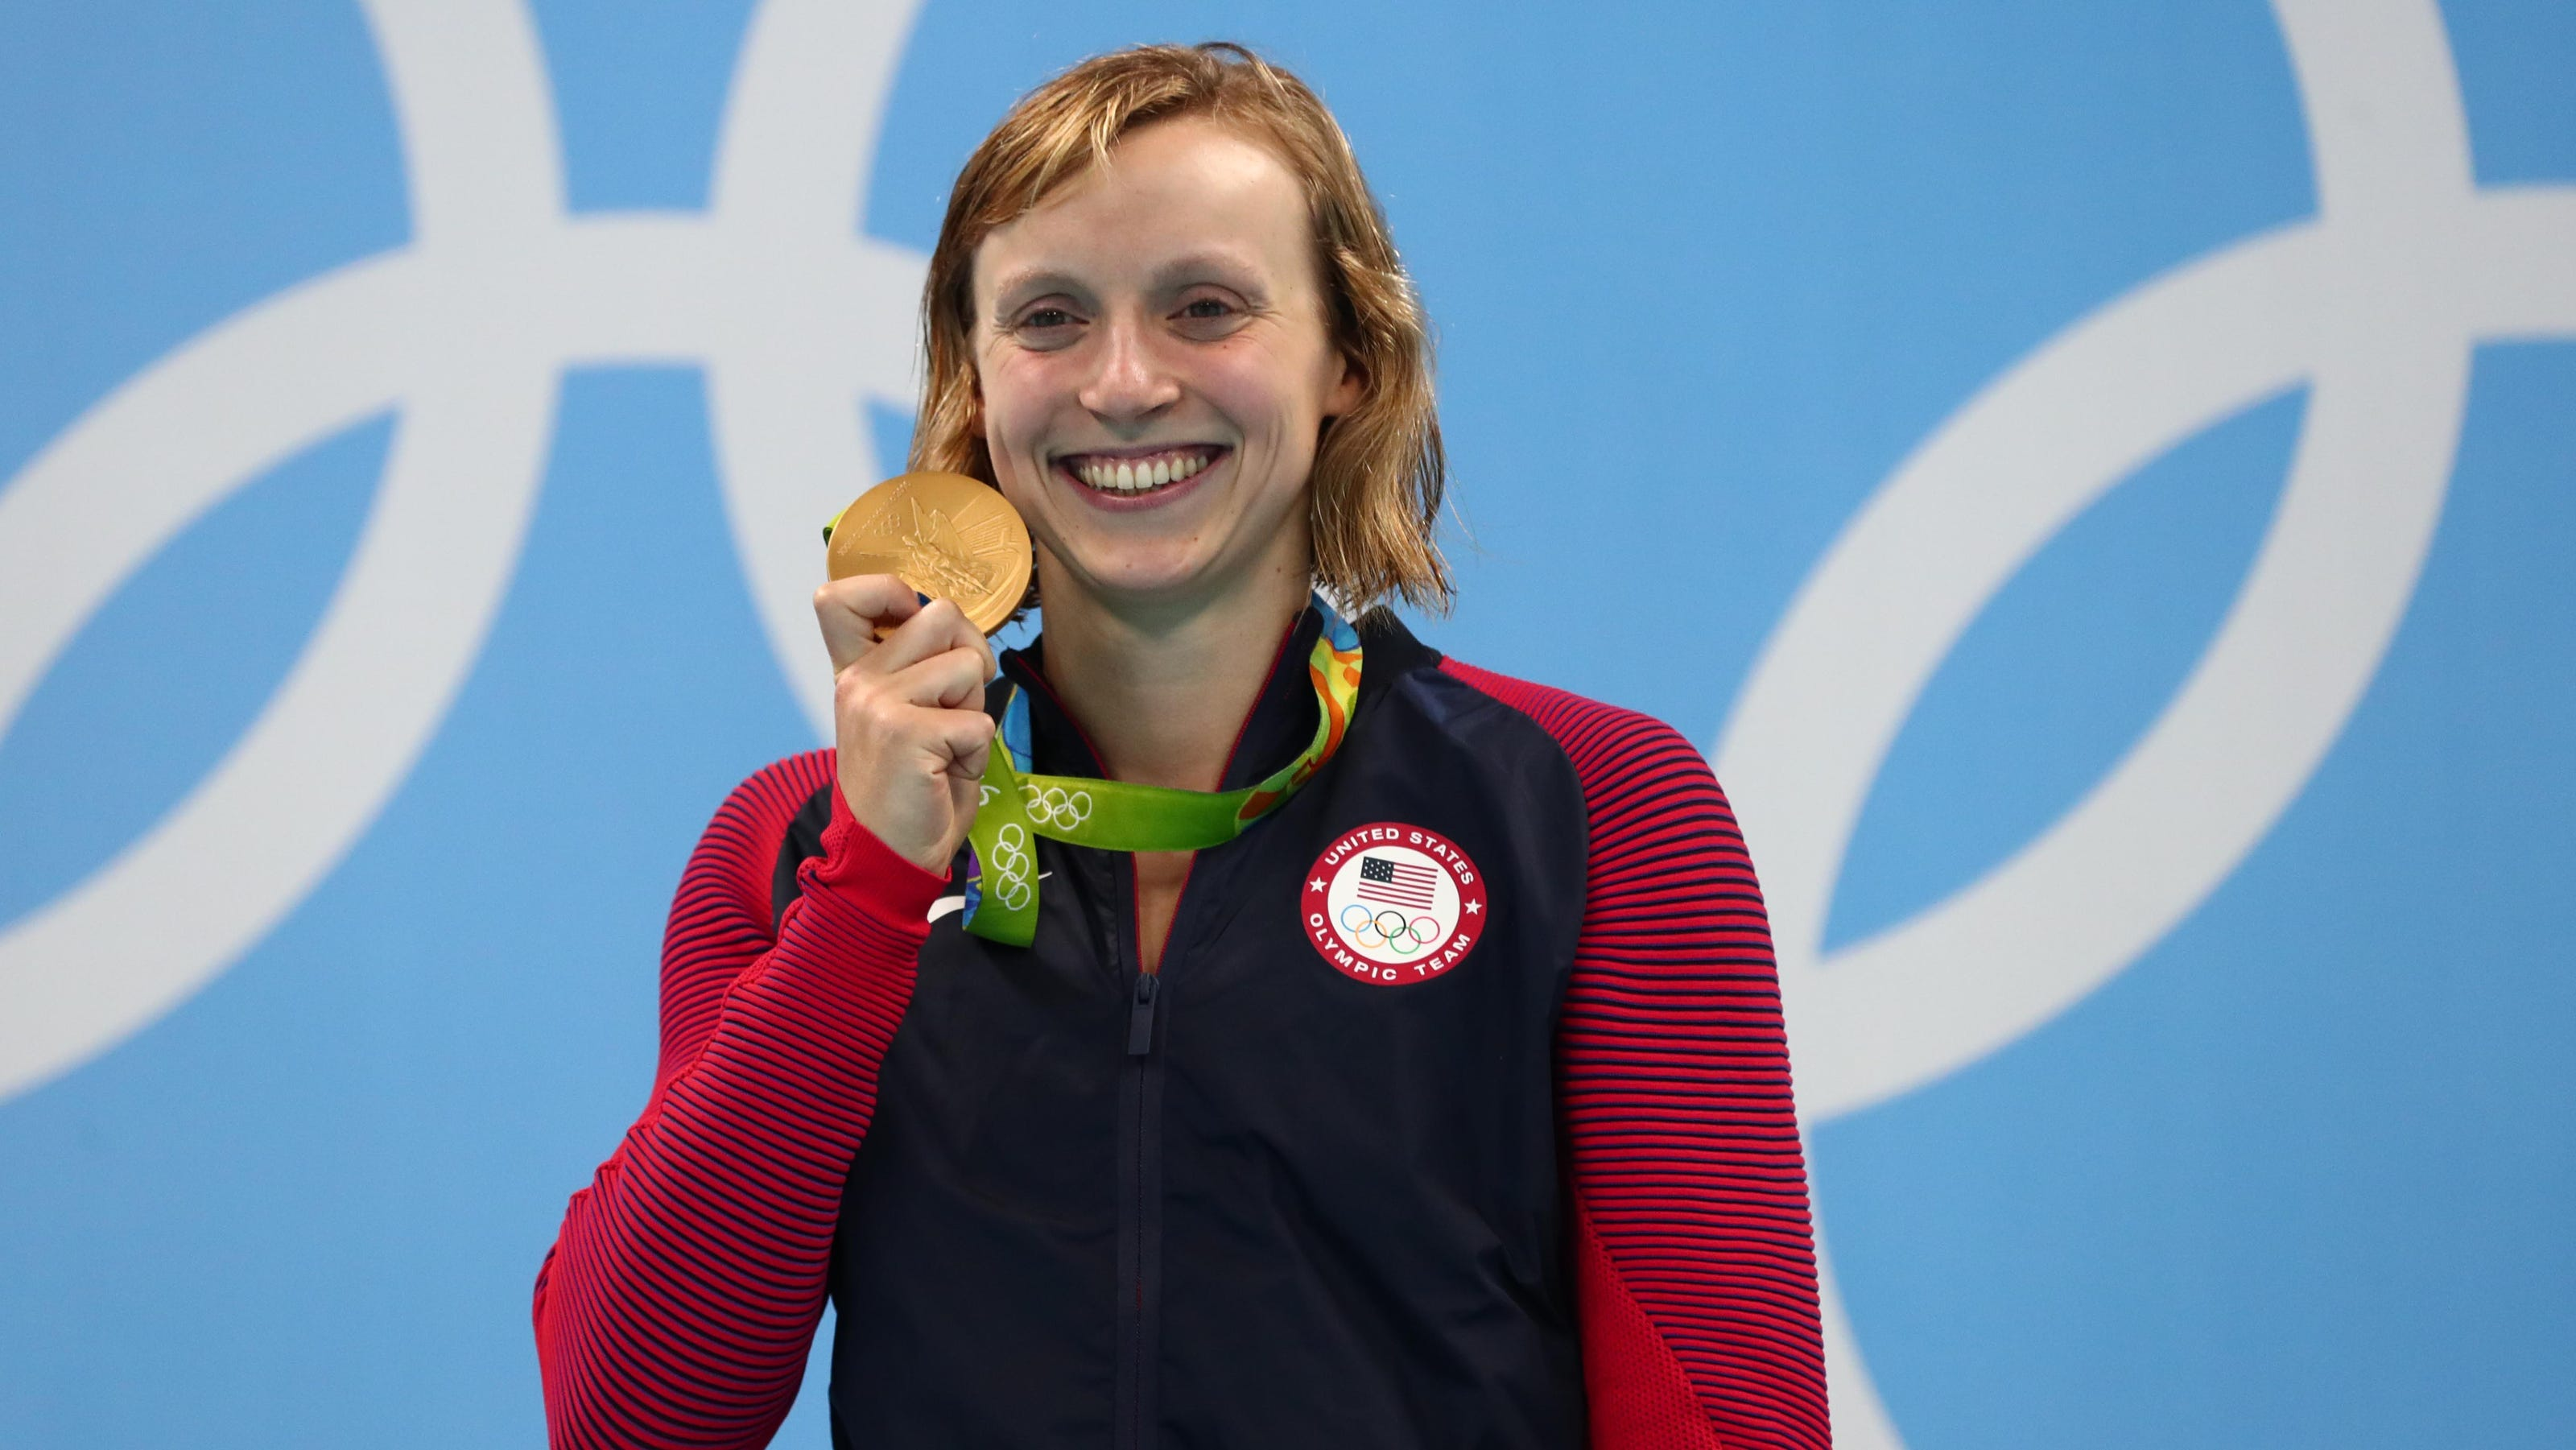 Olympic star Katie Ledecky has training, Stanford studies this week instead of Tokyo races - USA TODAY